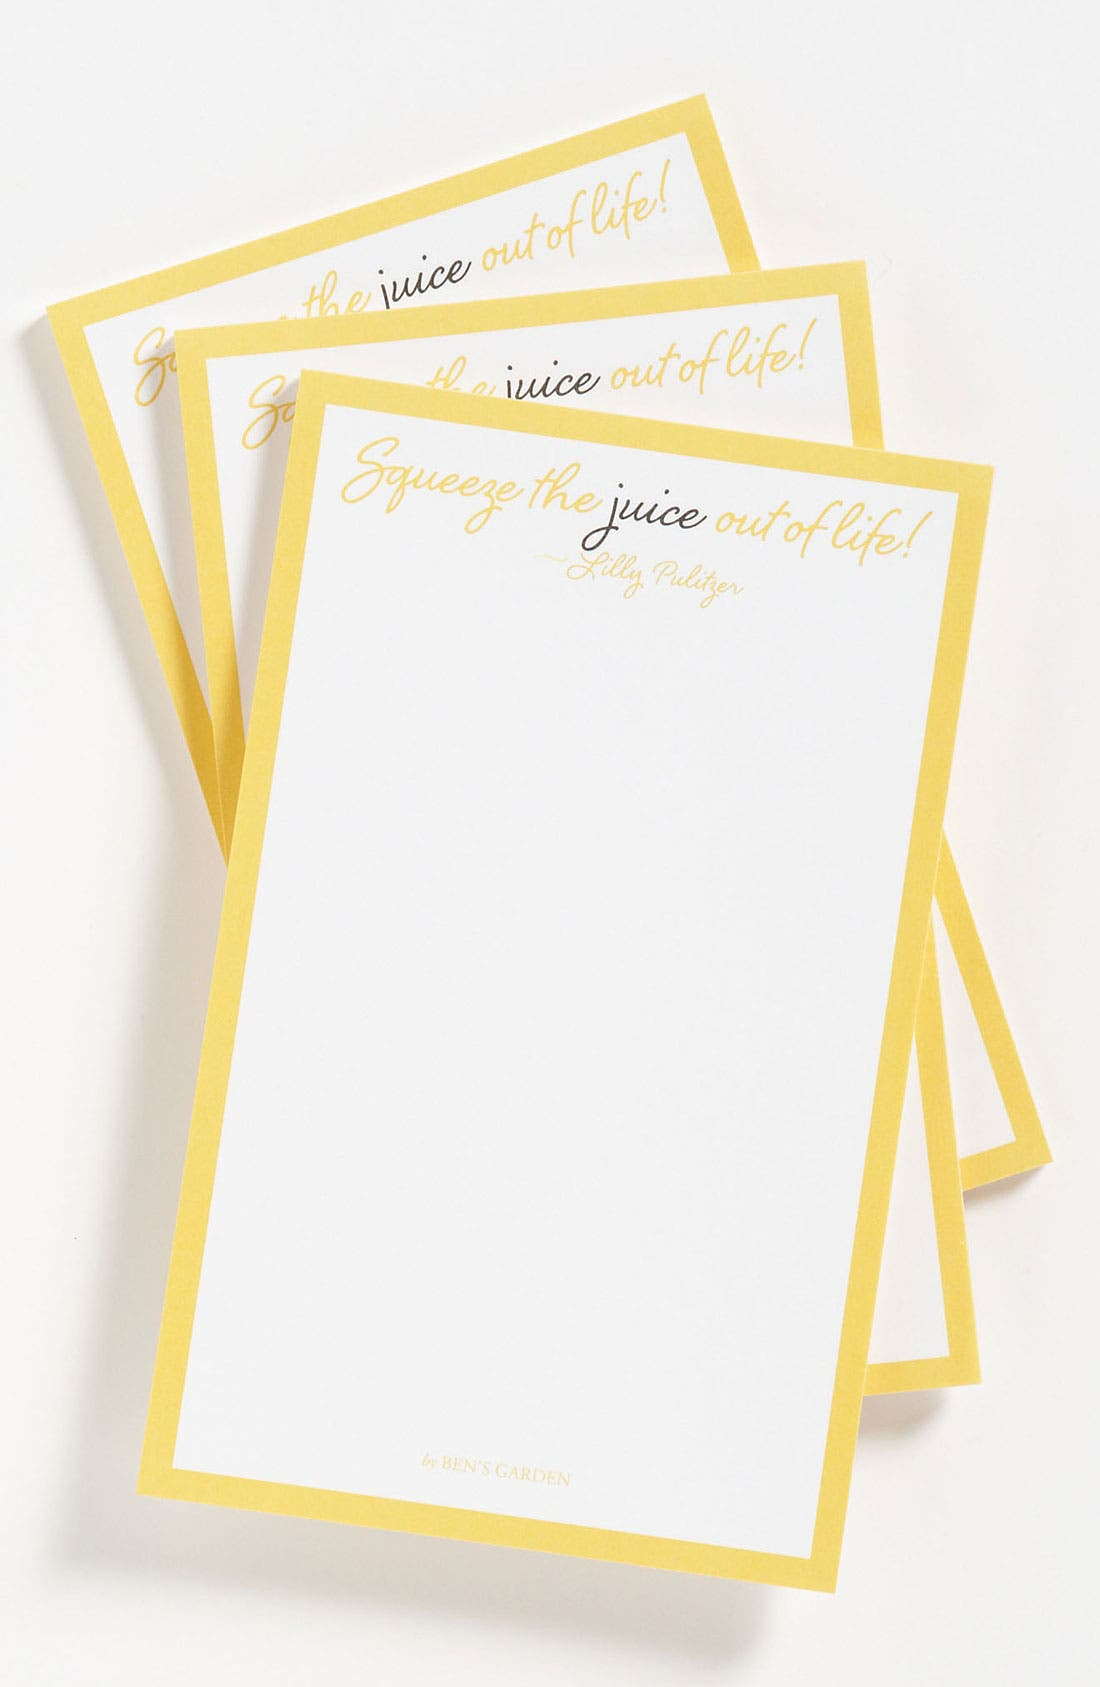 Main Image - Ben's Garden 'Squeeze the Juice Out of Life' Notepads (3-Pack)